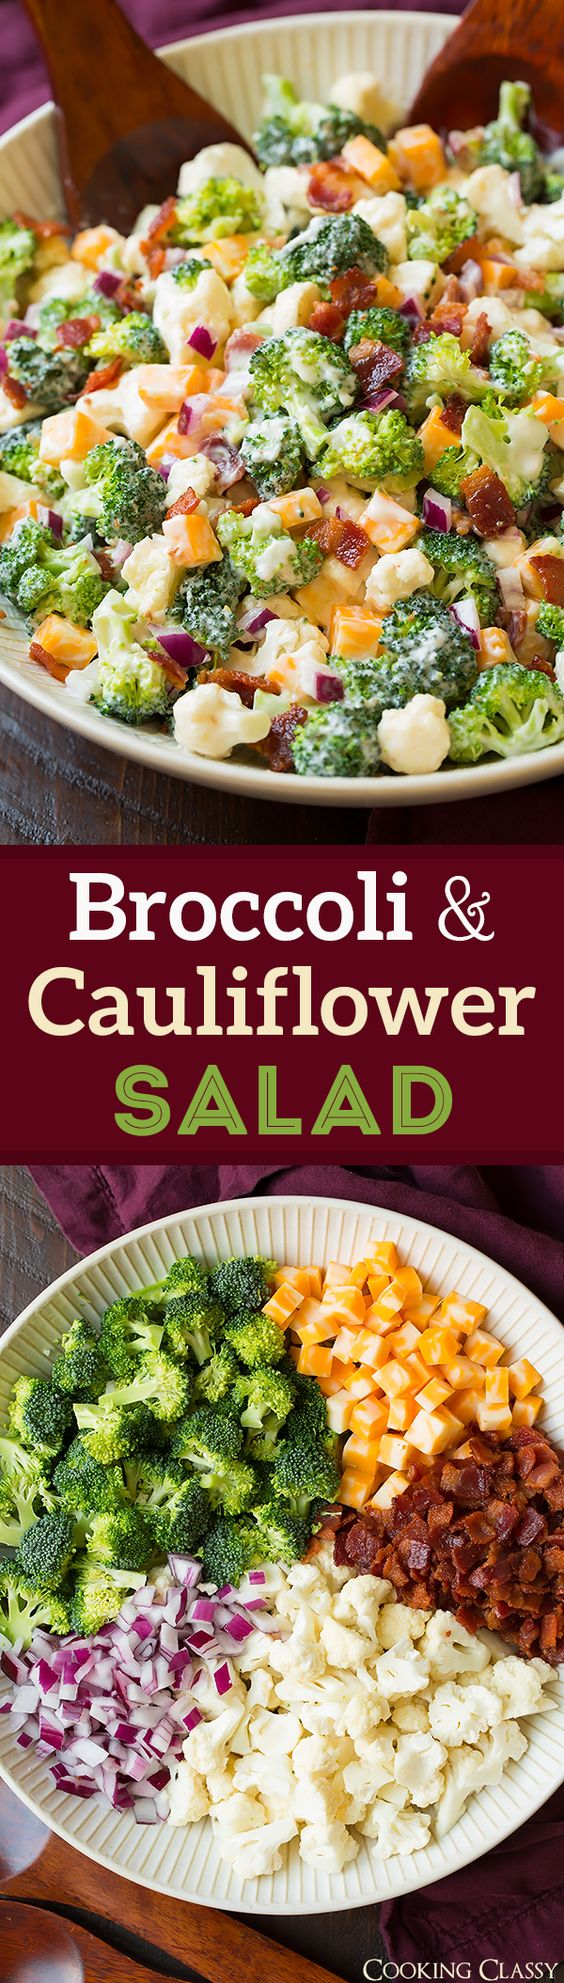 Cauliflower salad, Raw broccoli and Cauliflowers